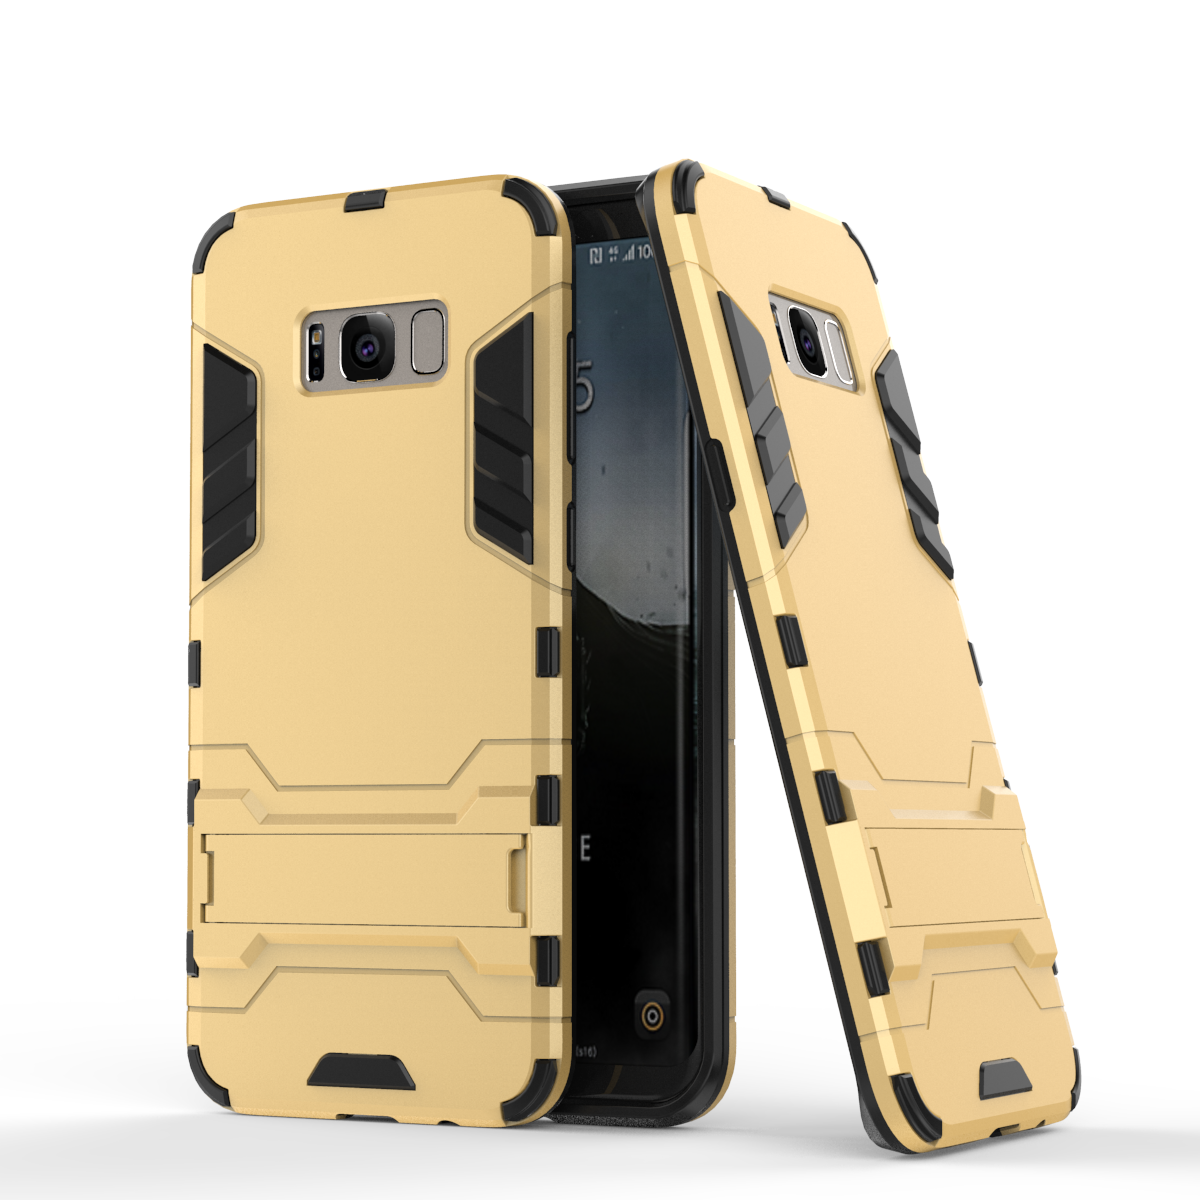 Rmor defender protective case cover with kickstand for samsung galaxy s8 gold p20170327161658650